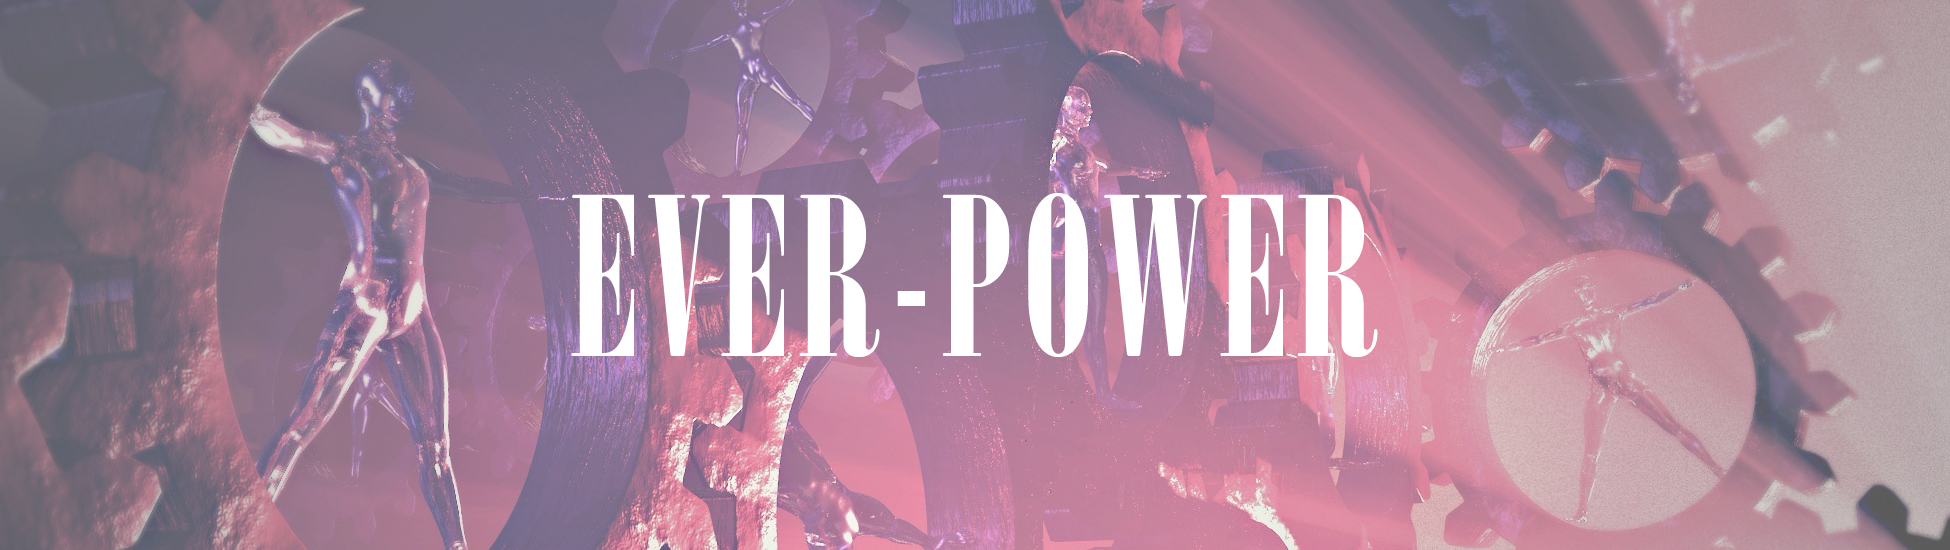 EVER-POWER